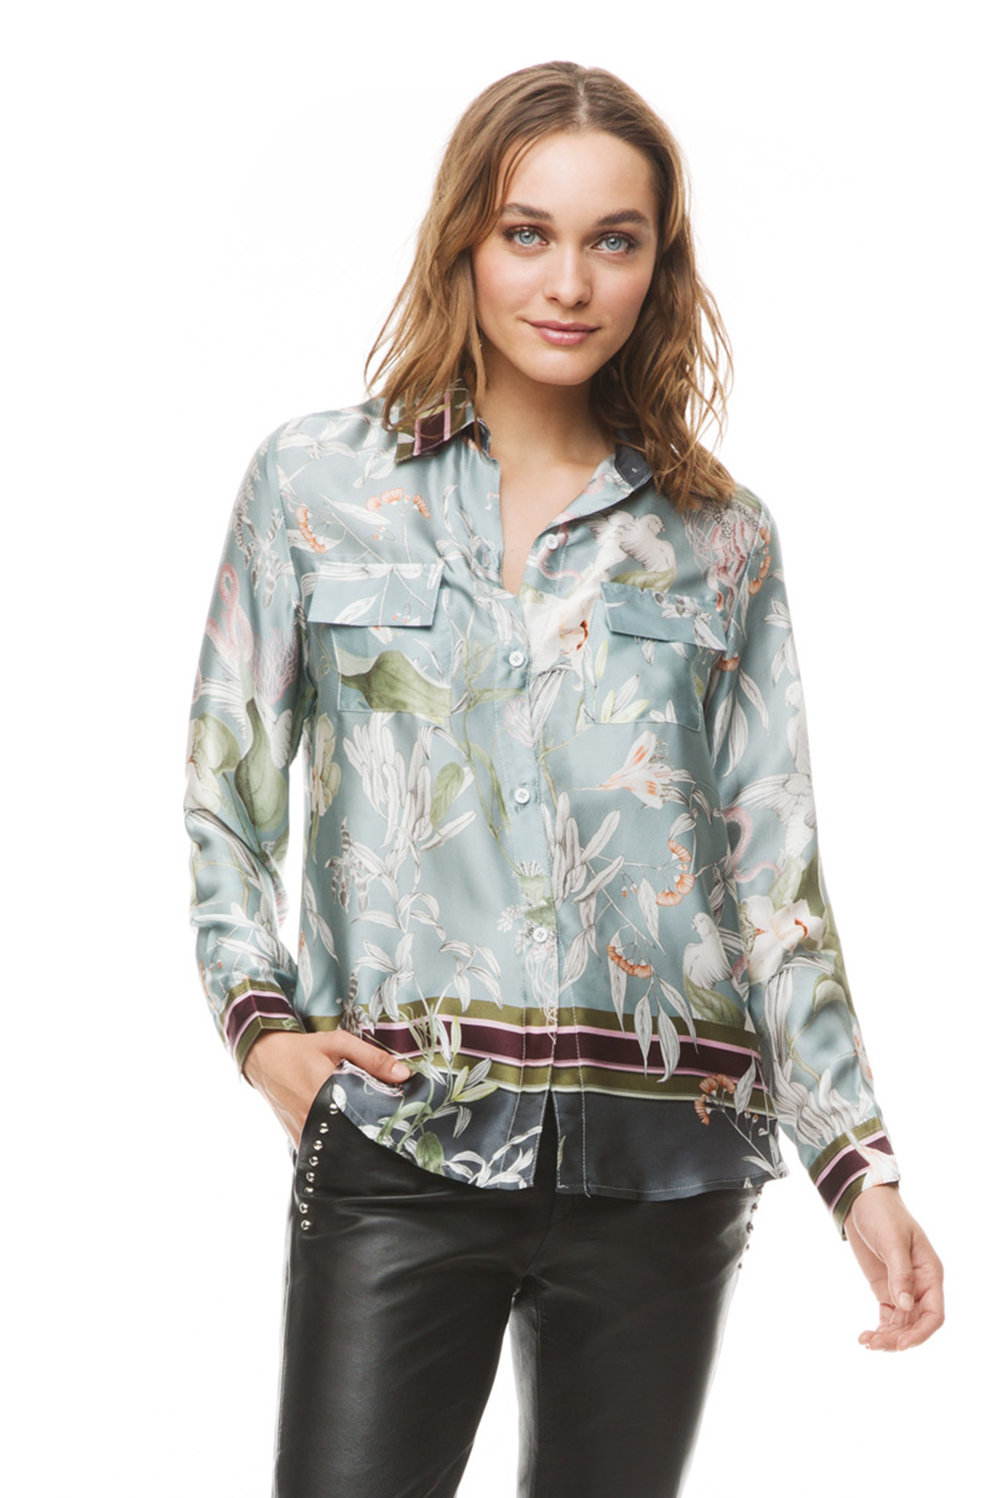 641_b94c2e3259-_0012_nicolina-shirt-blue-jungle-1-by-malina-big.jpg